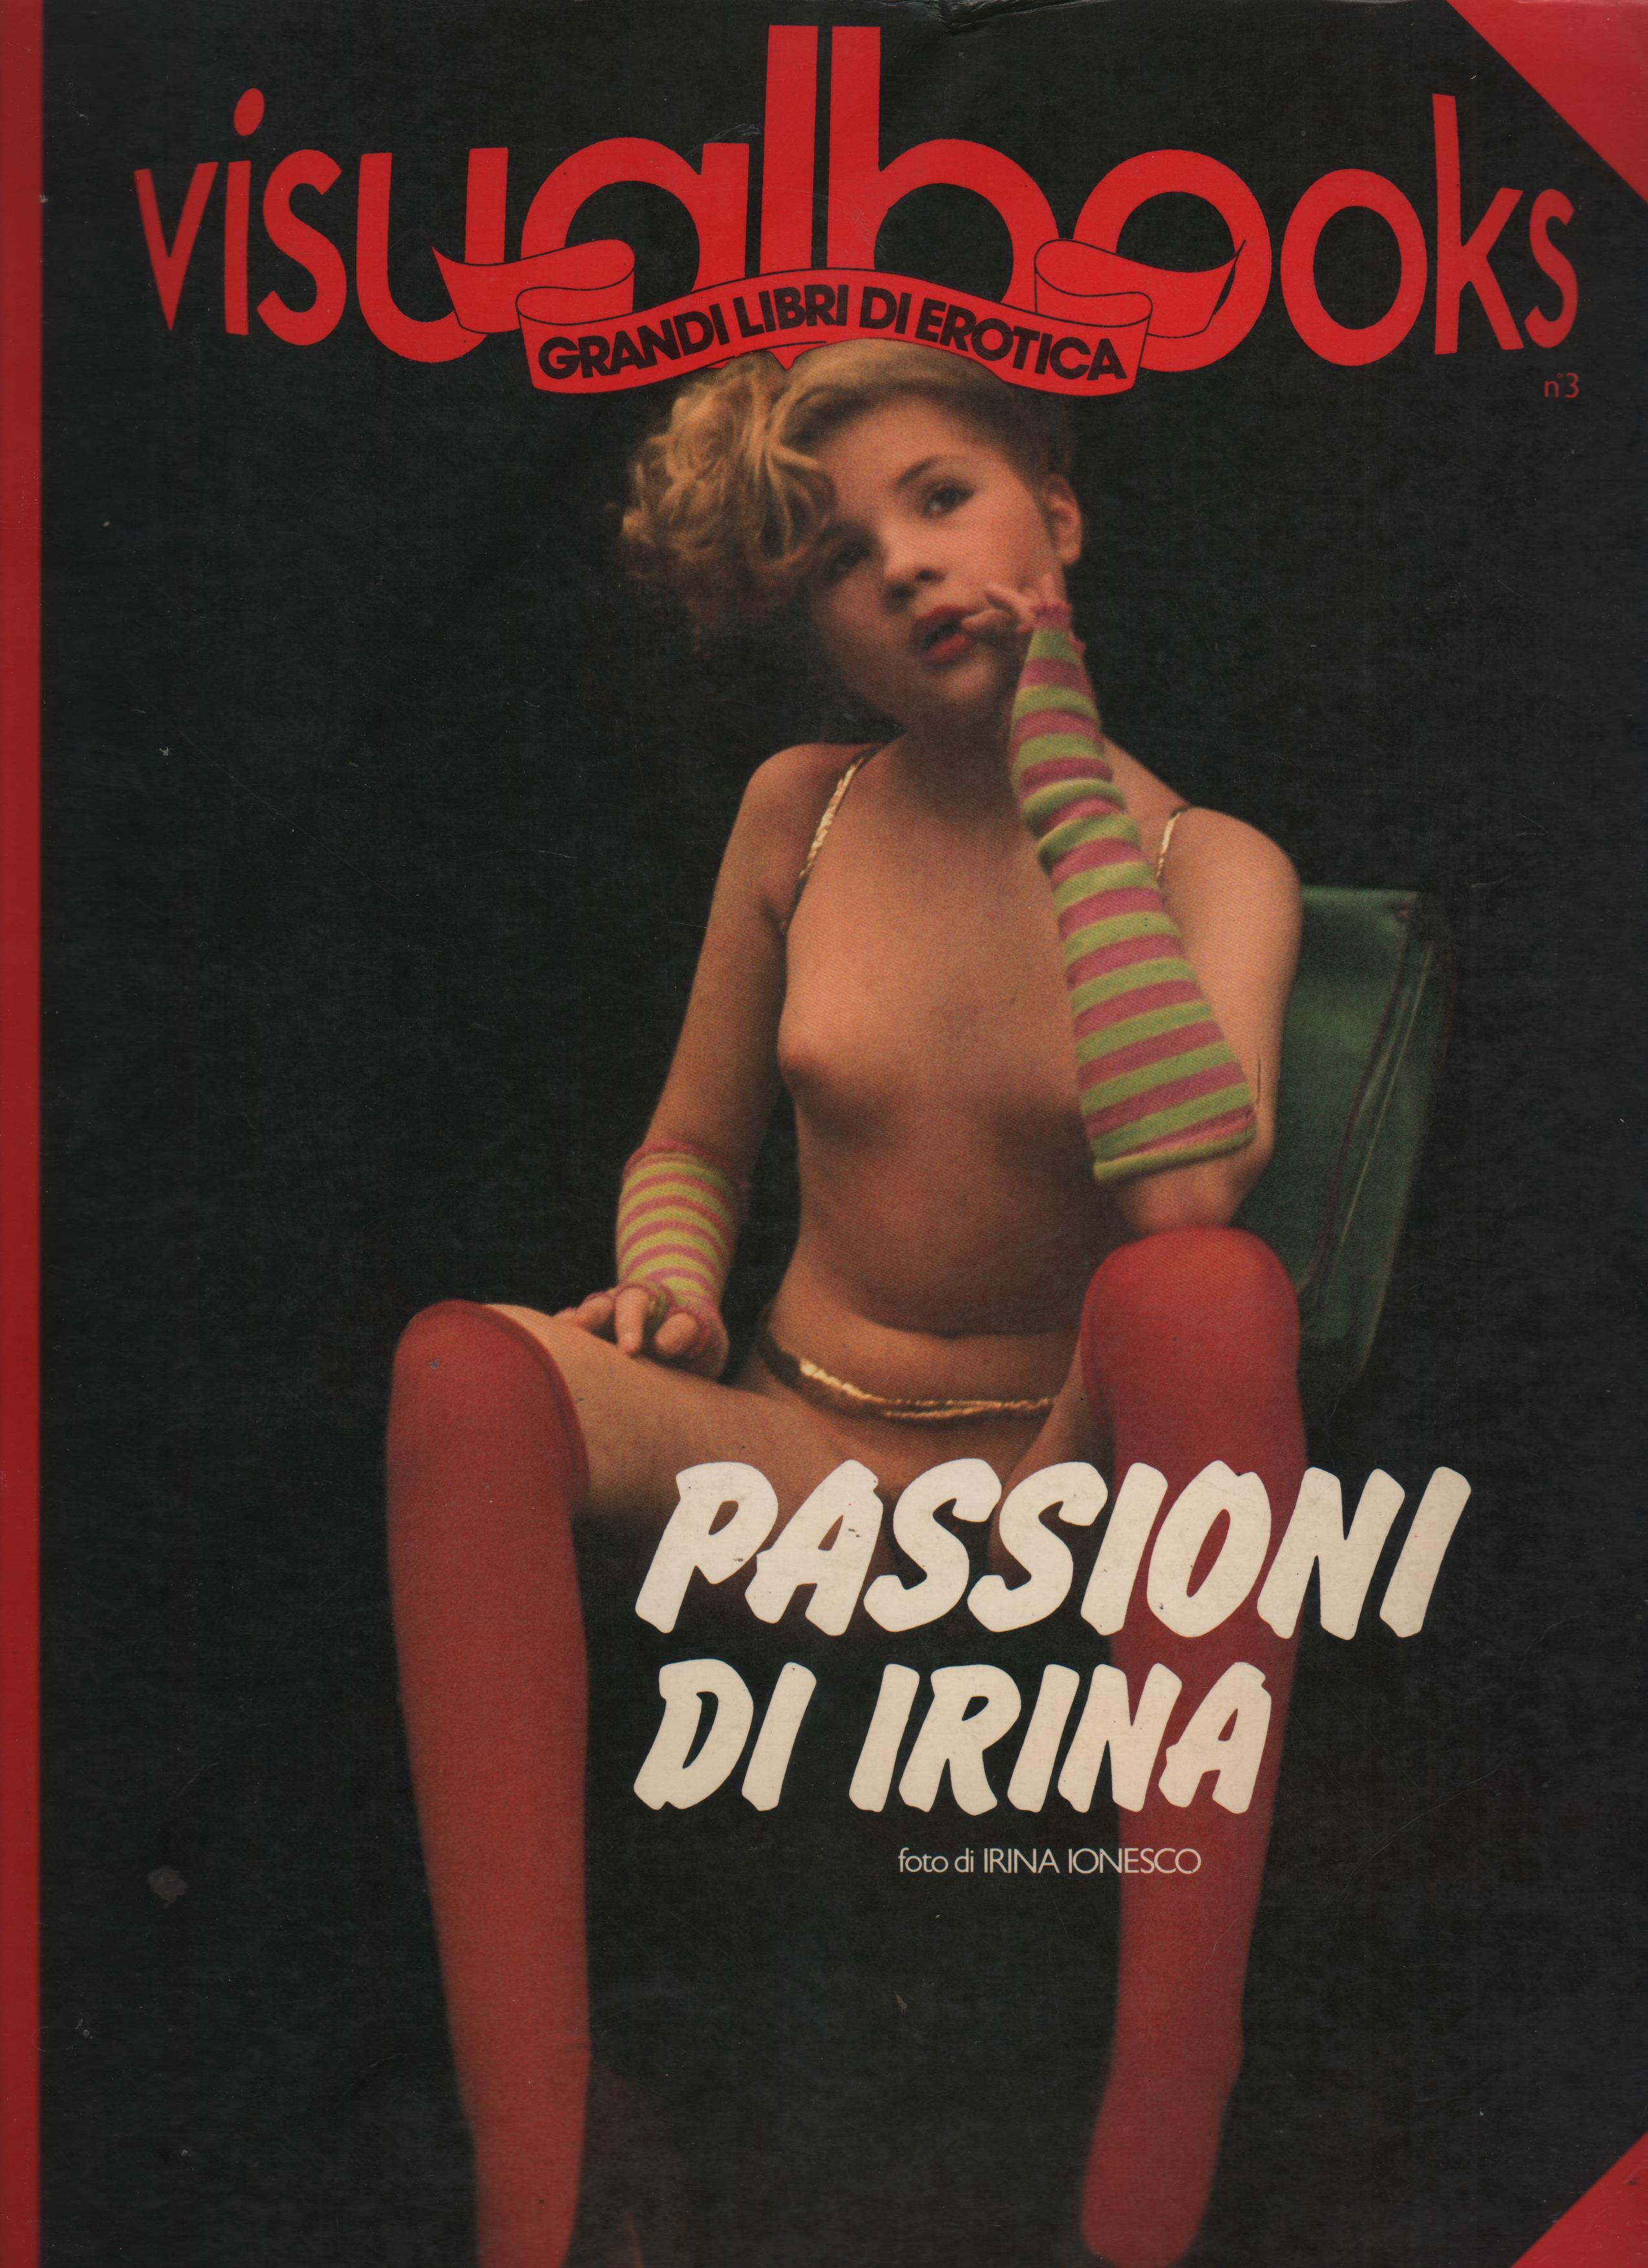 PASSIONI DI IRINA ionesco visualbooks n.3 eva jonesco passions